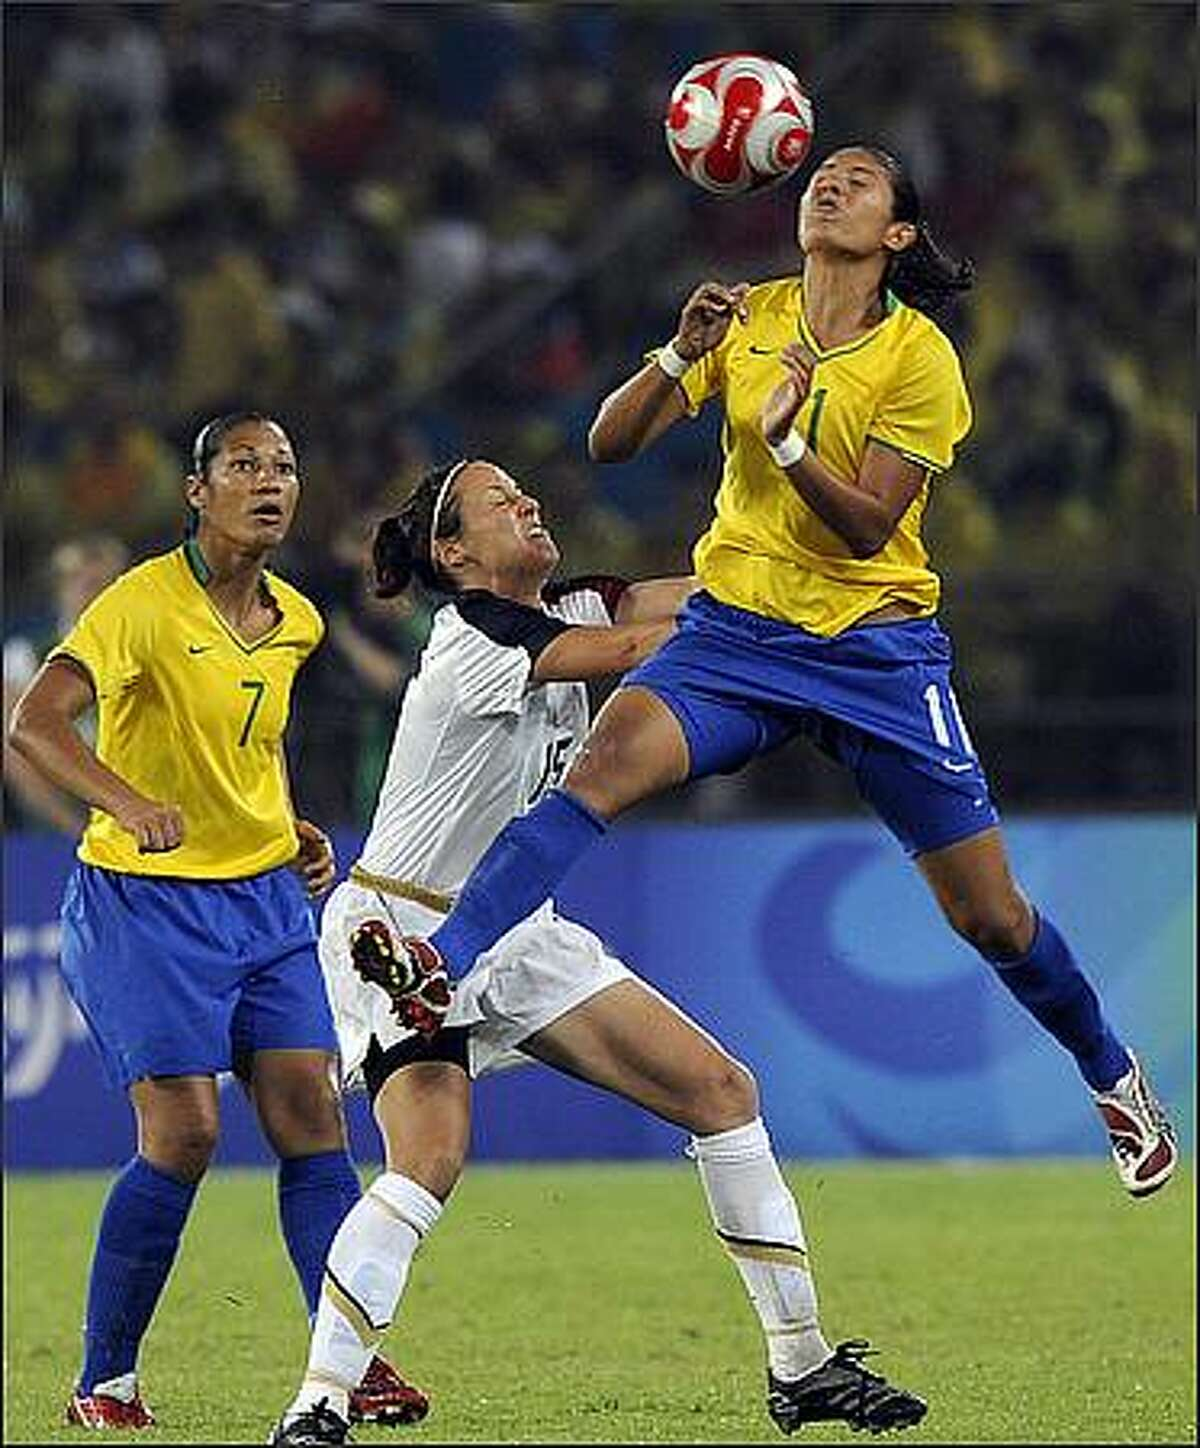 Brazil's Cristiane (R) vies for the ball with Kate Markgraf (C) of US while Brazil's Daniela looks on during the 2008 Beijing Olympic Games women's football Gold medal match at the Workers Stadium in Beijing.